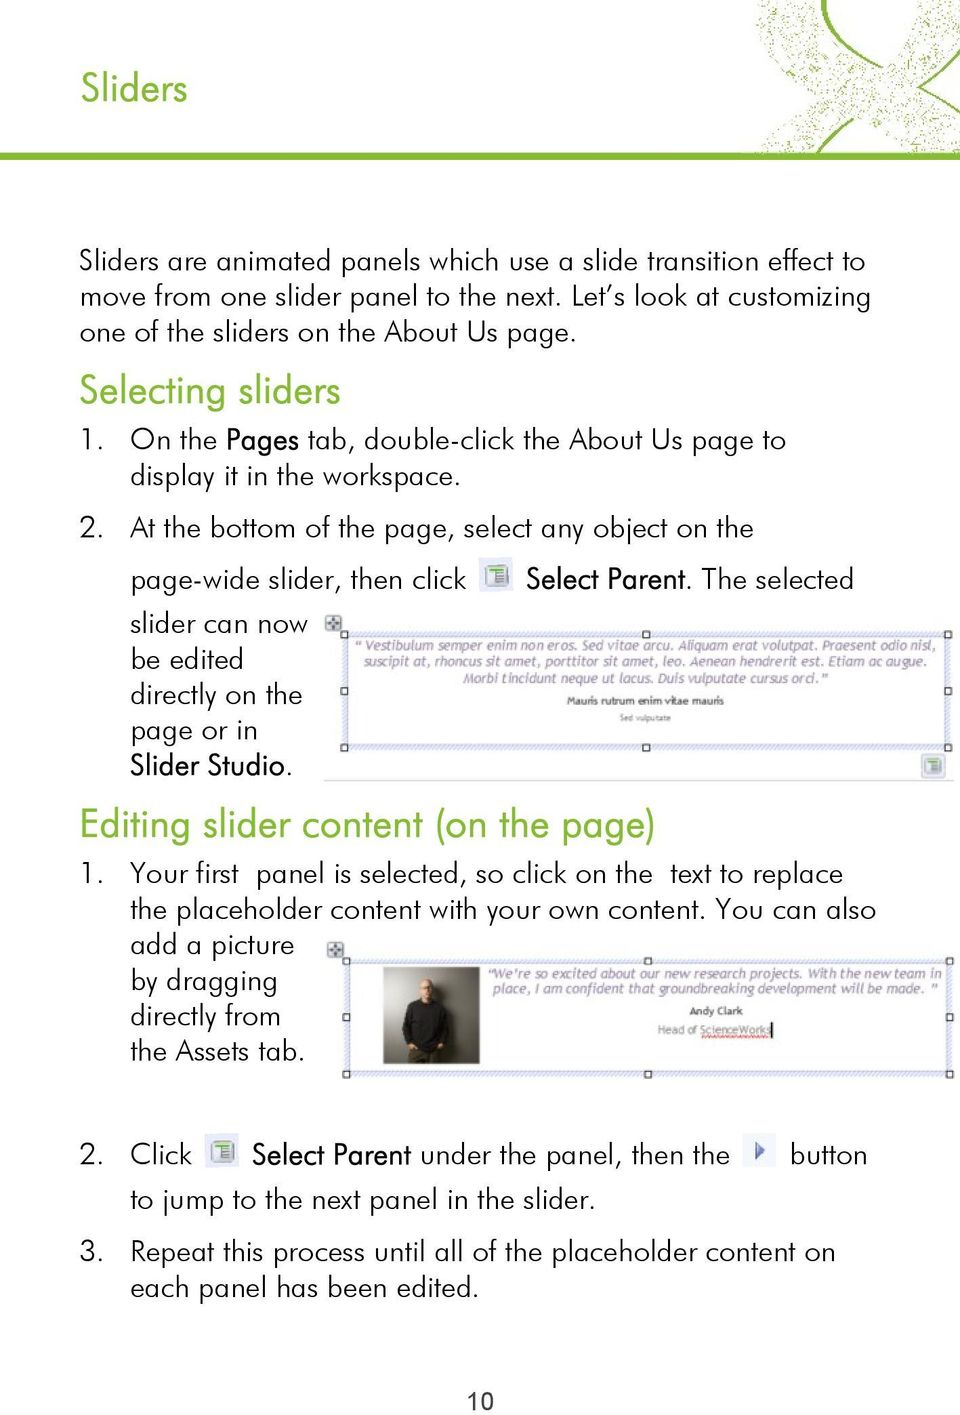 At the bottom of the page, select any object on the page-wide slider, then click slider can now be edited directly on the page or in.. The selected 1.